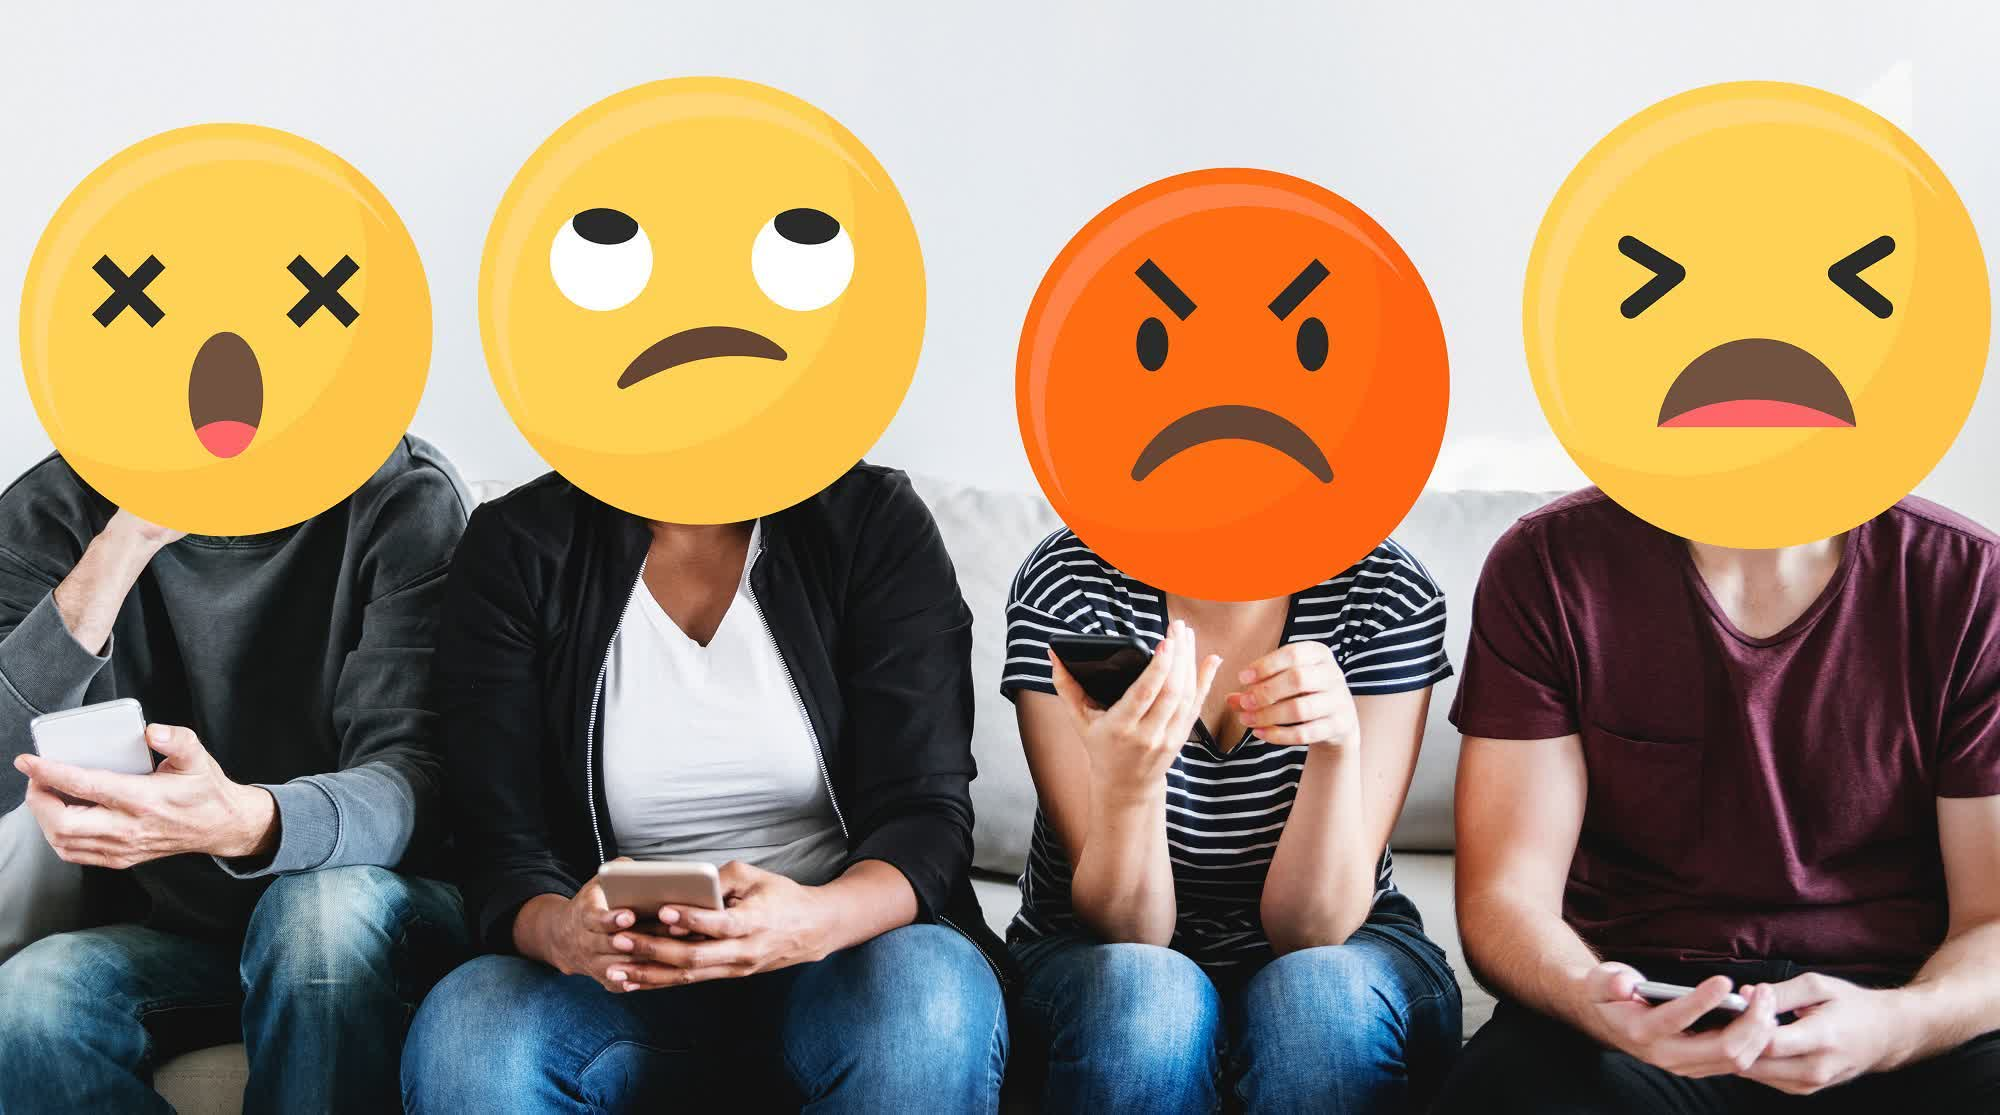 Facebook-style reactions are coming to Outlook